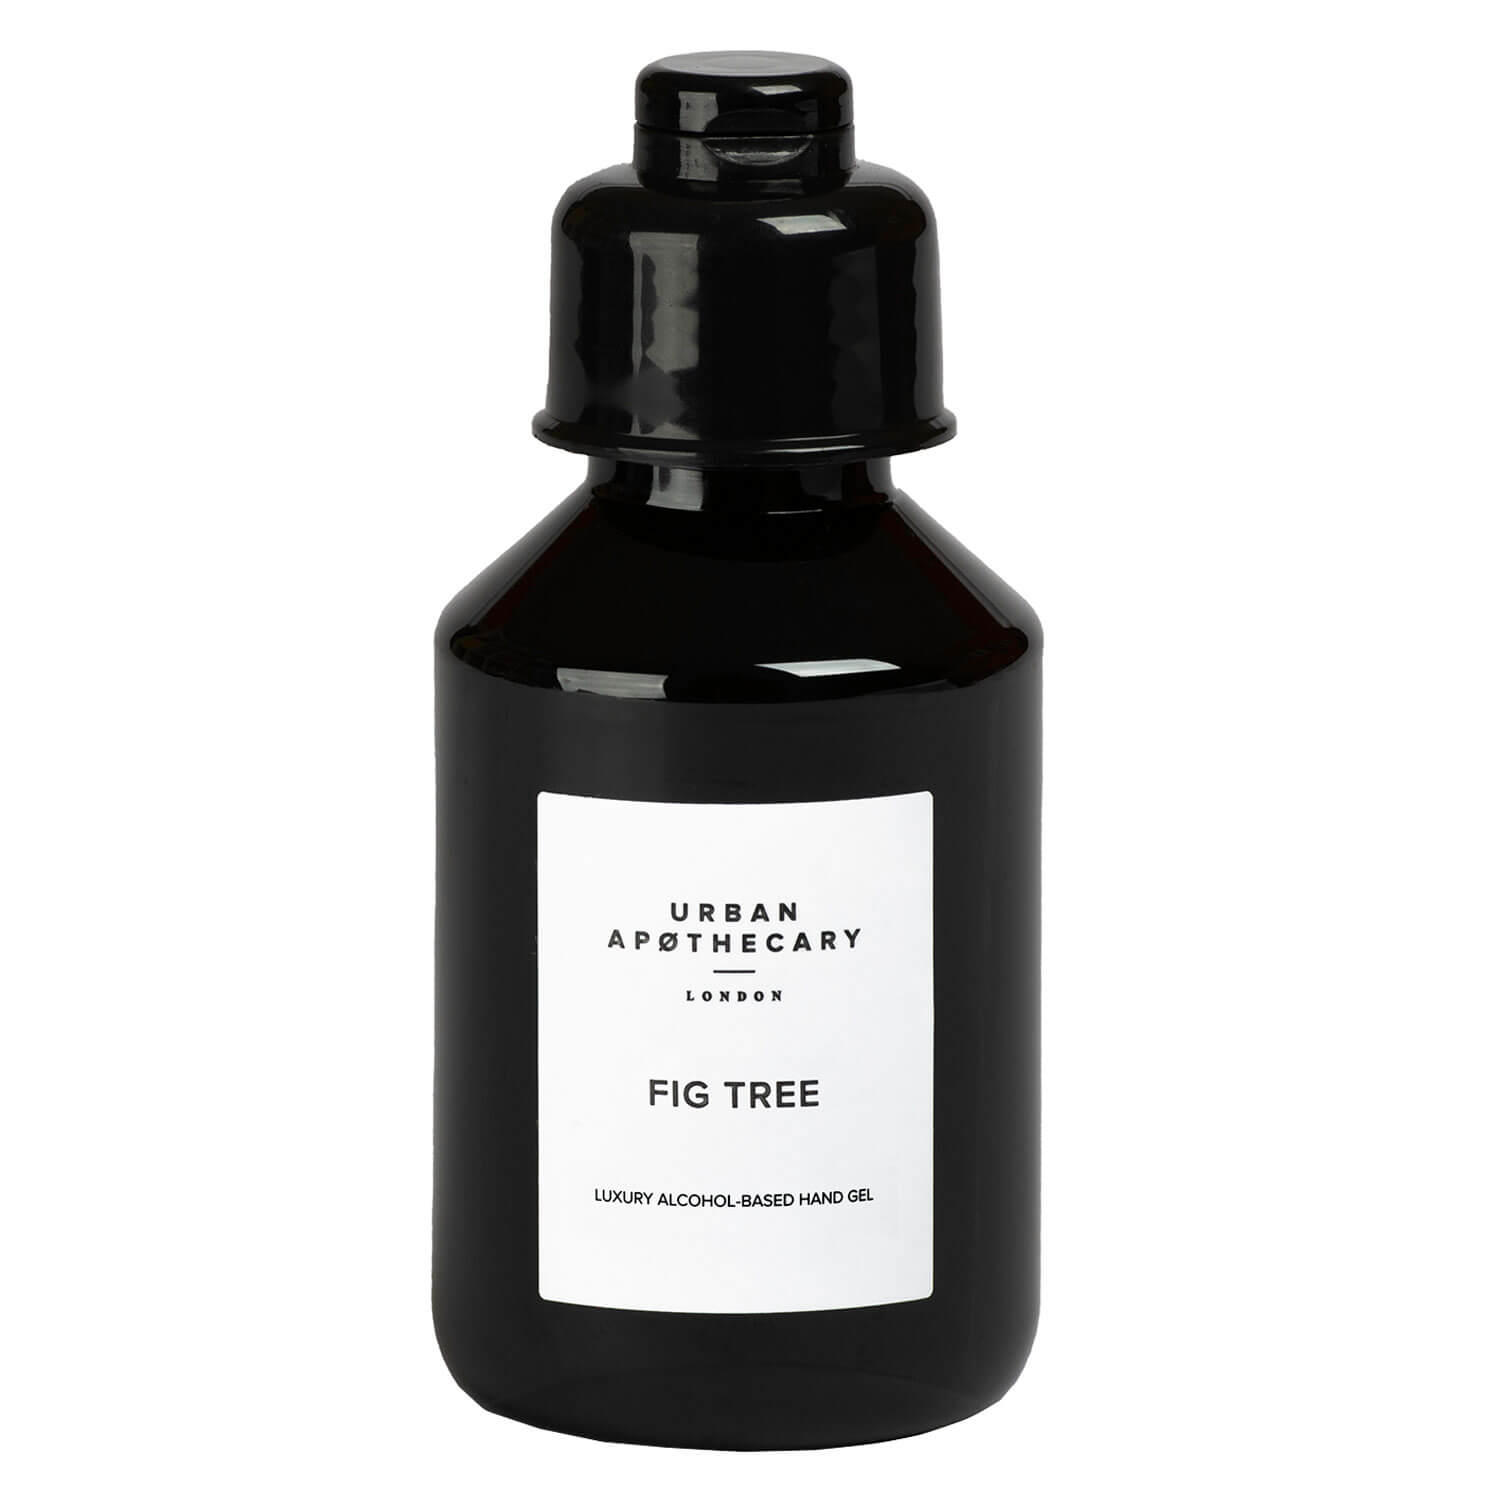 Urban Apothecary - Fig Tree Luxury Hand Sanitiser Gel 70% Alcohol